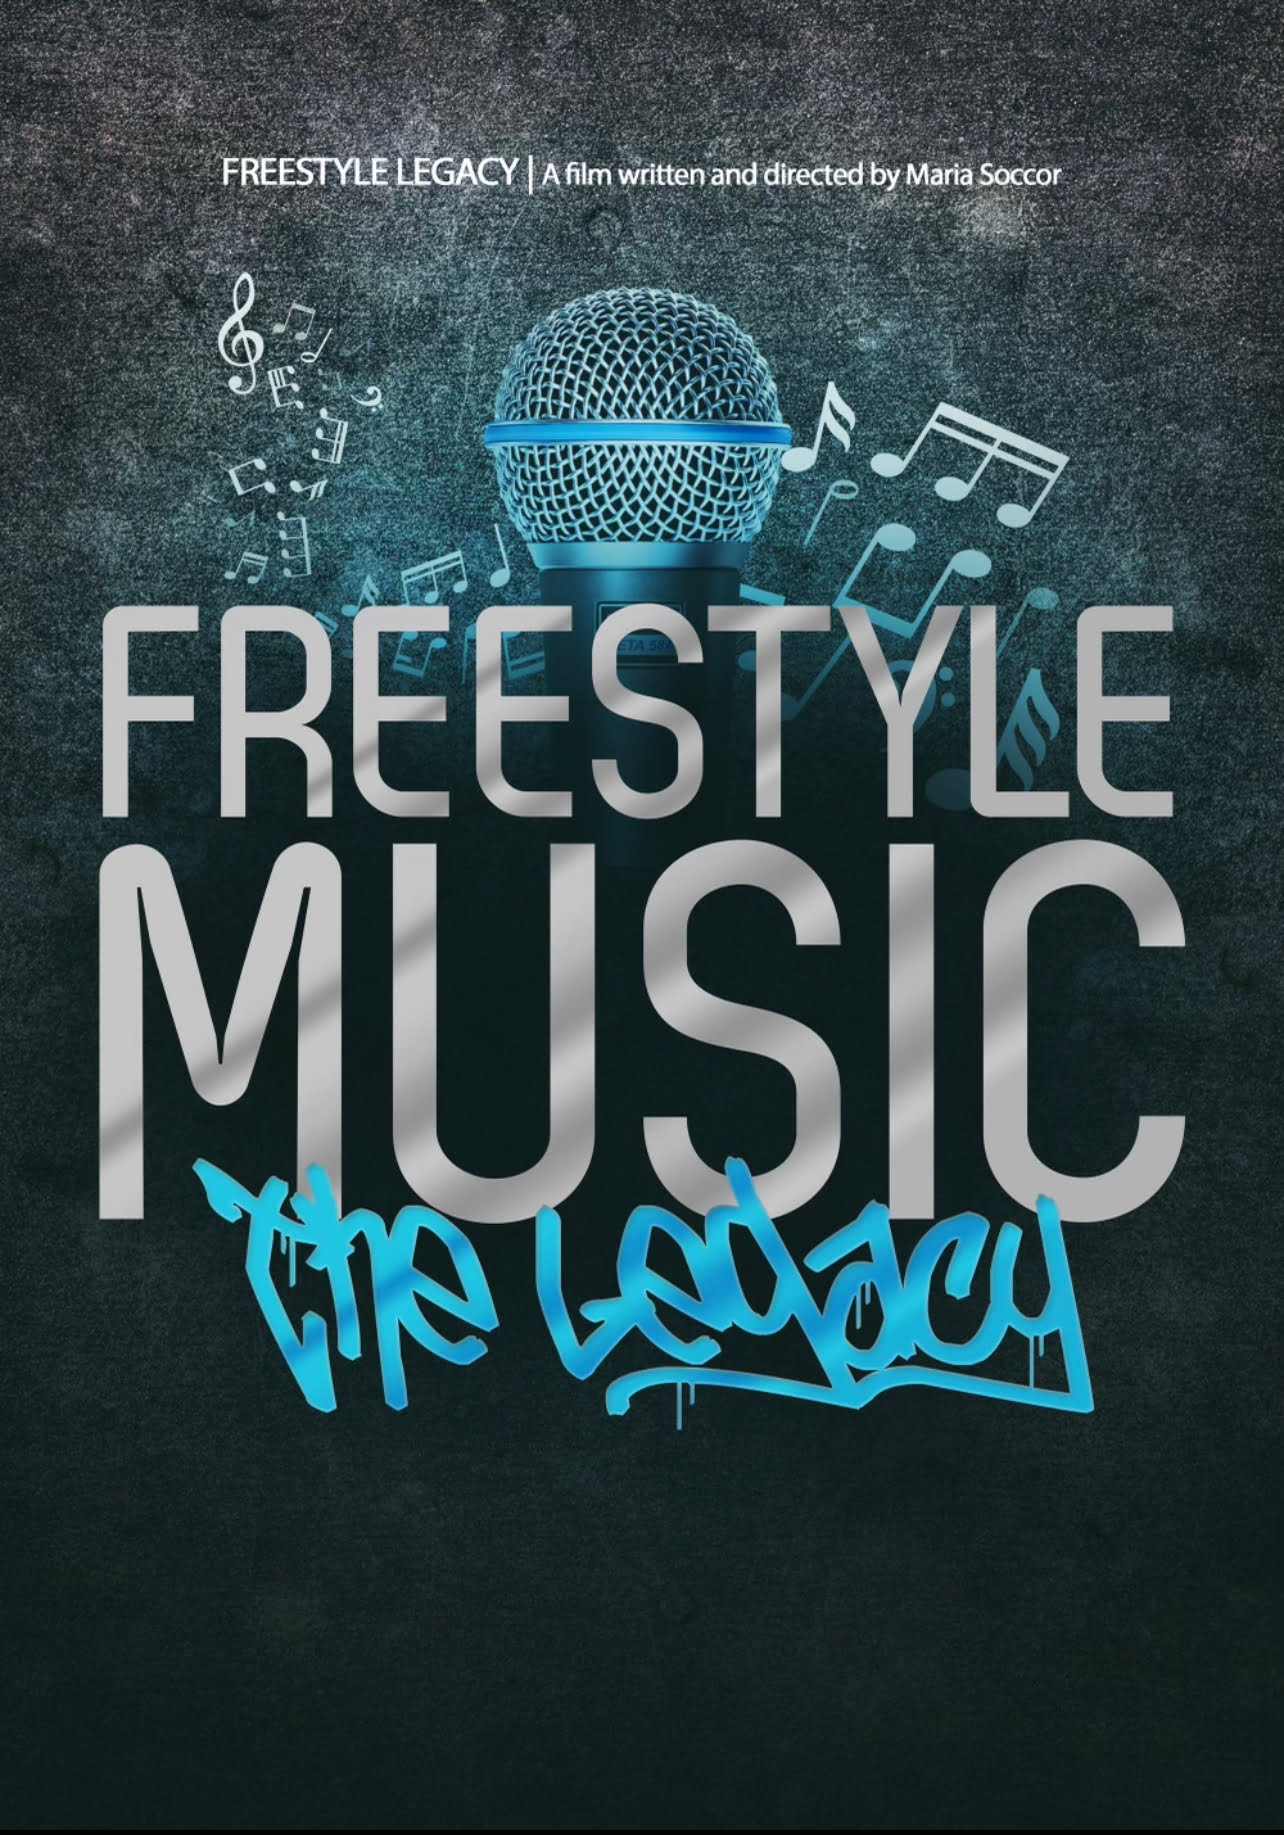 Award-Winning Director Maria Soccor Begins Production on 'Freestyle Music: The Legacy' Documentary Featuring Latin Freestyle Stars